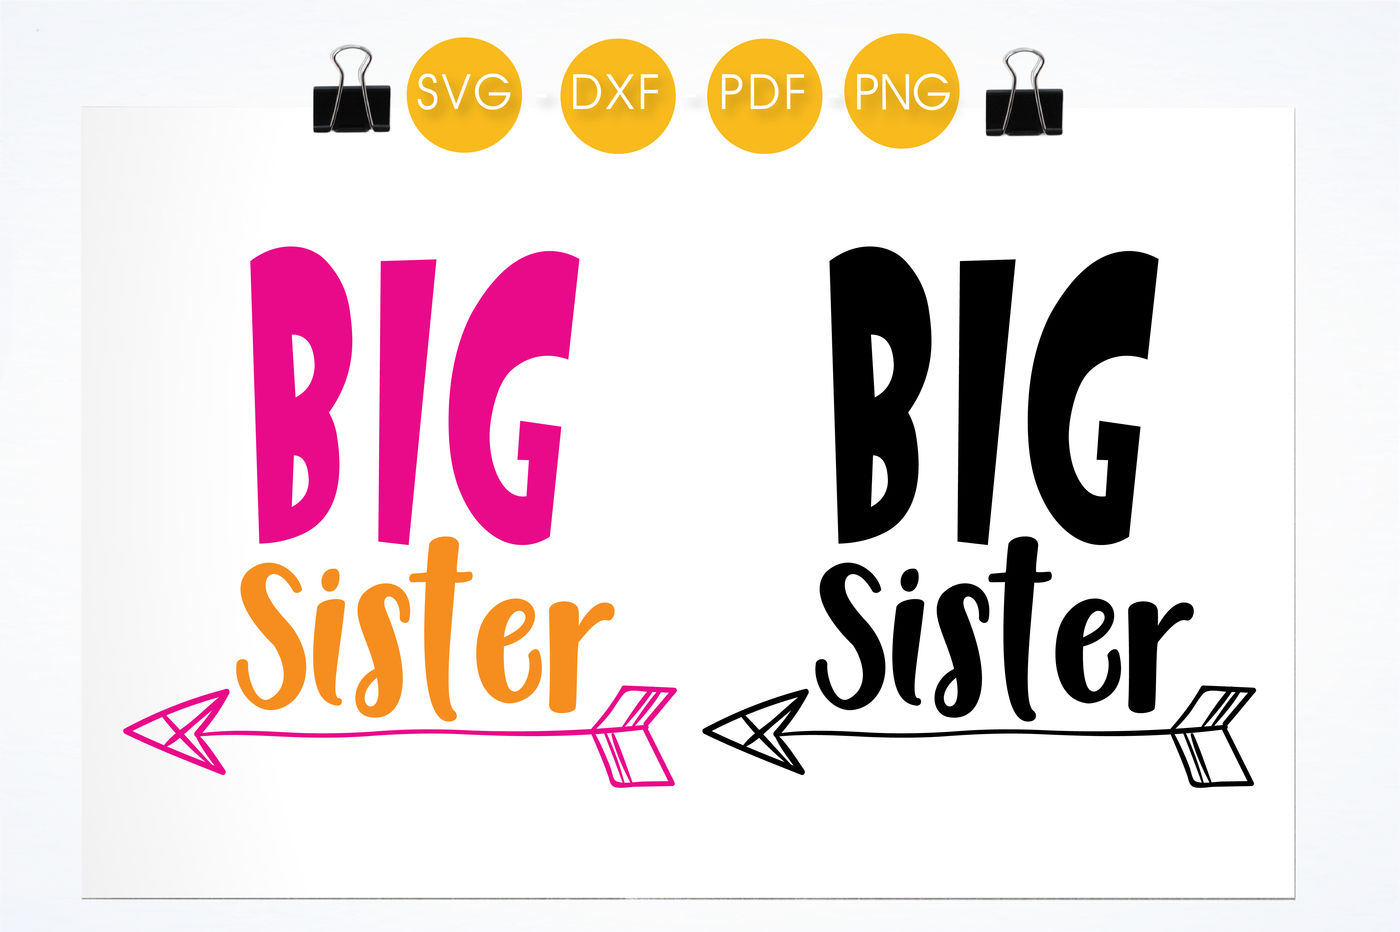 Big Sister Svg Png Eps Dxf Cut File By Prettycuttables Thehungryjpeg Com